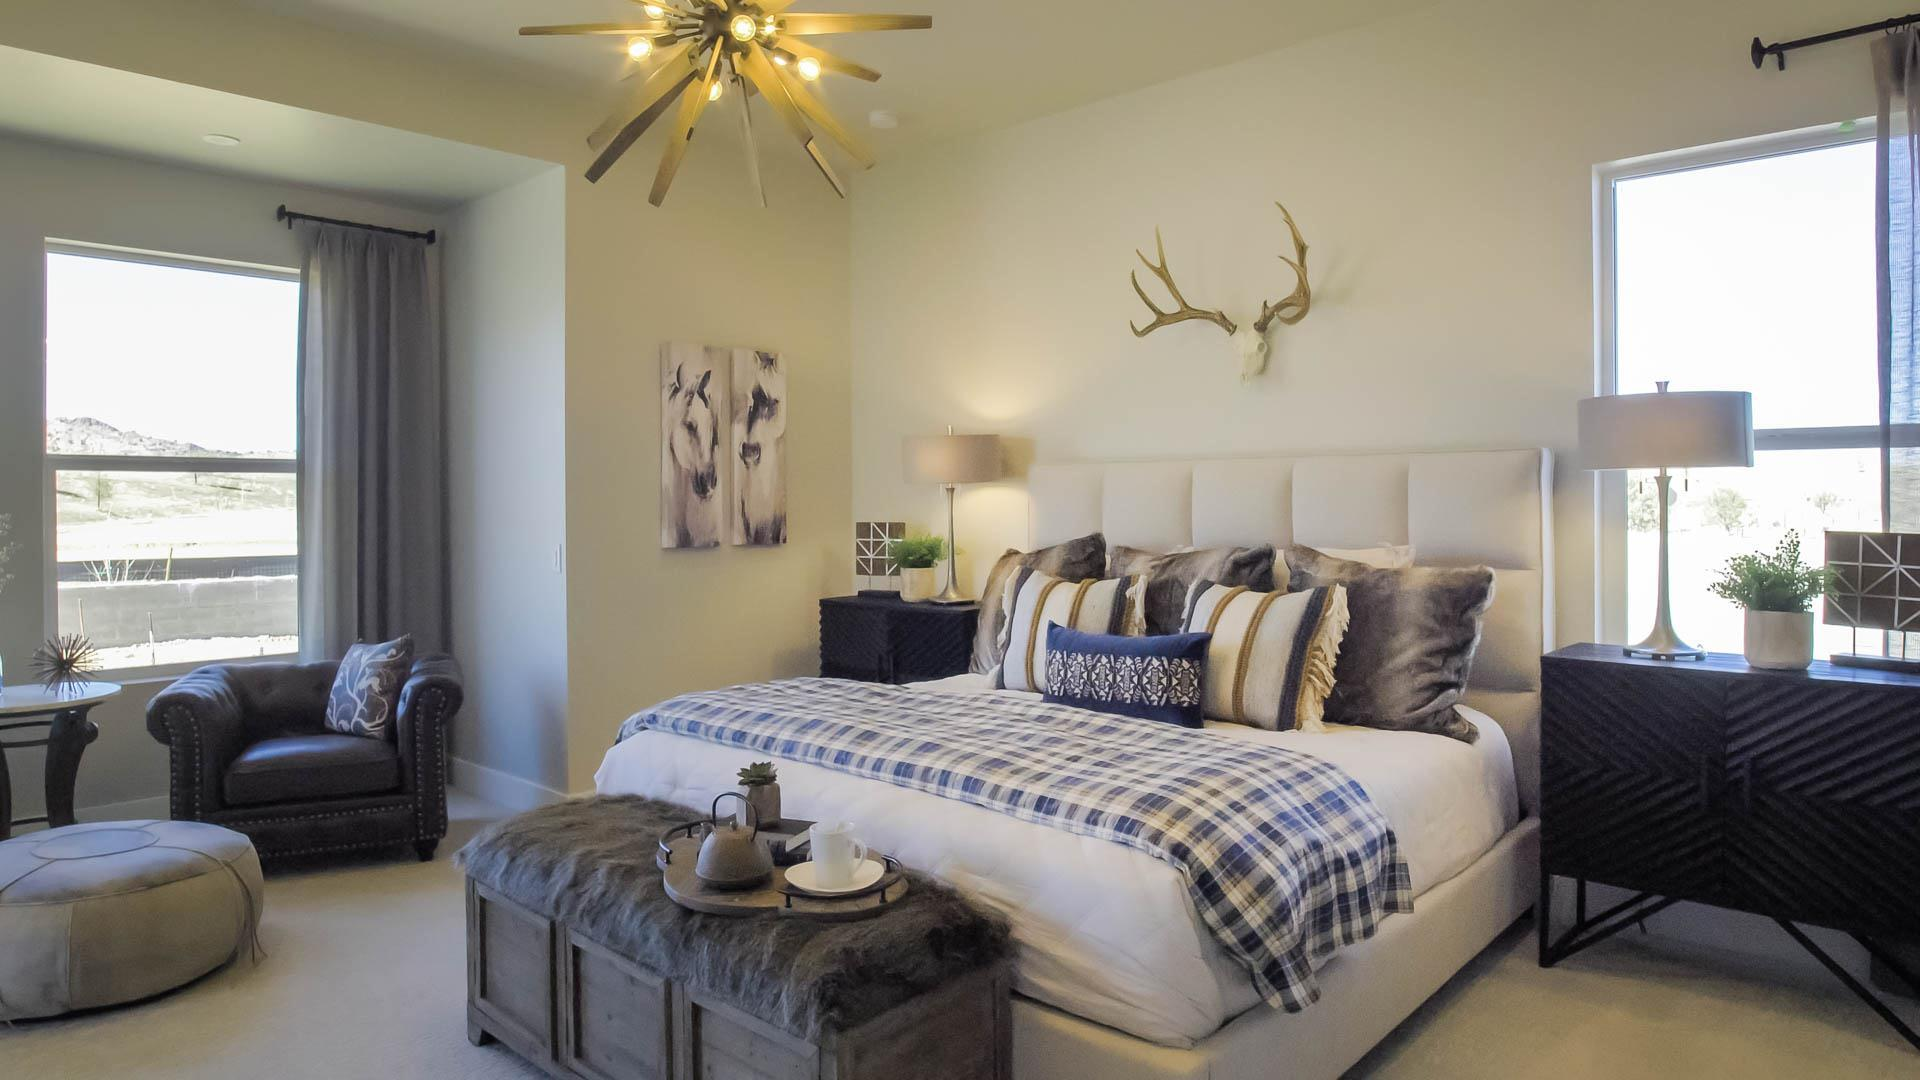 Bedroom featured in the J605 By Mandalay Homes in Prescott, AZ